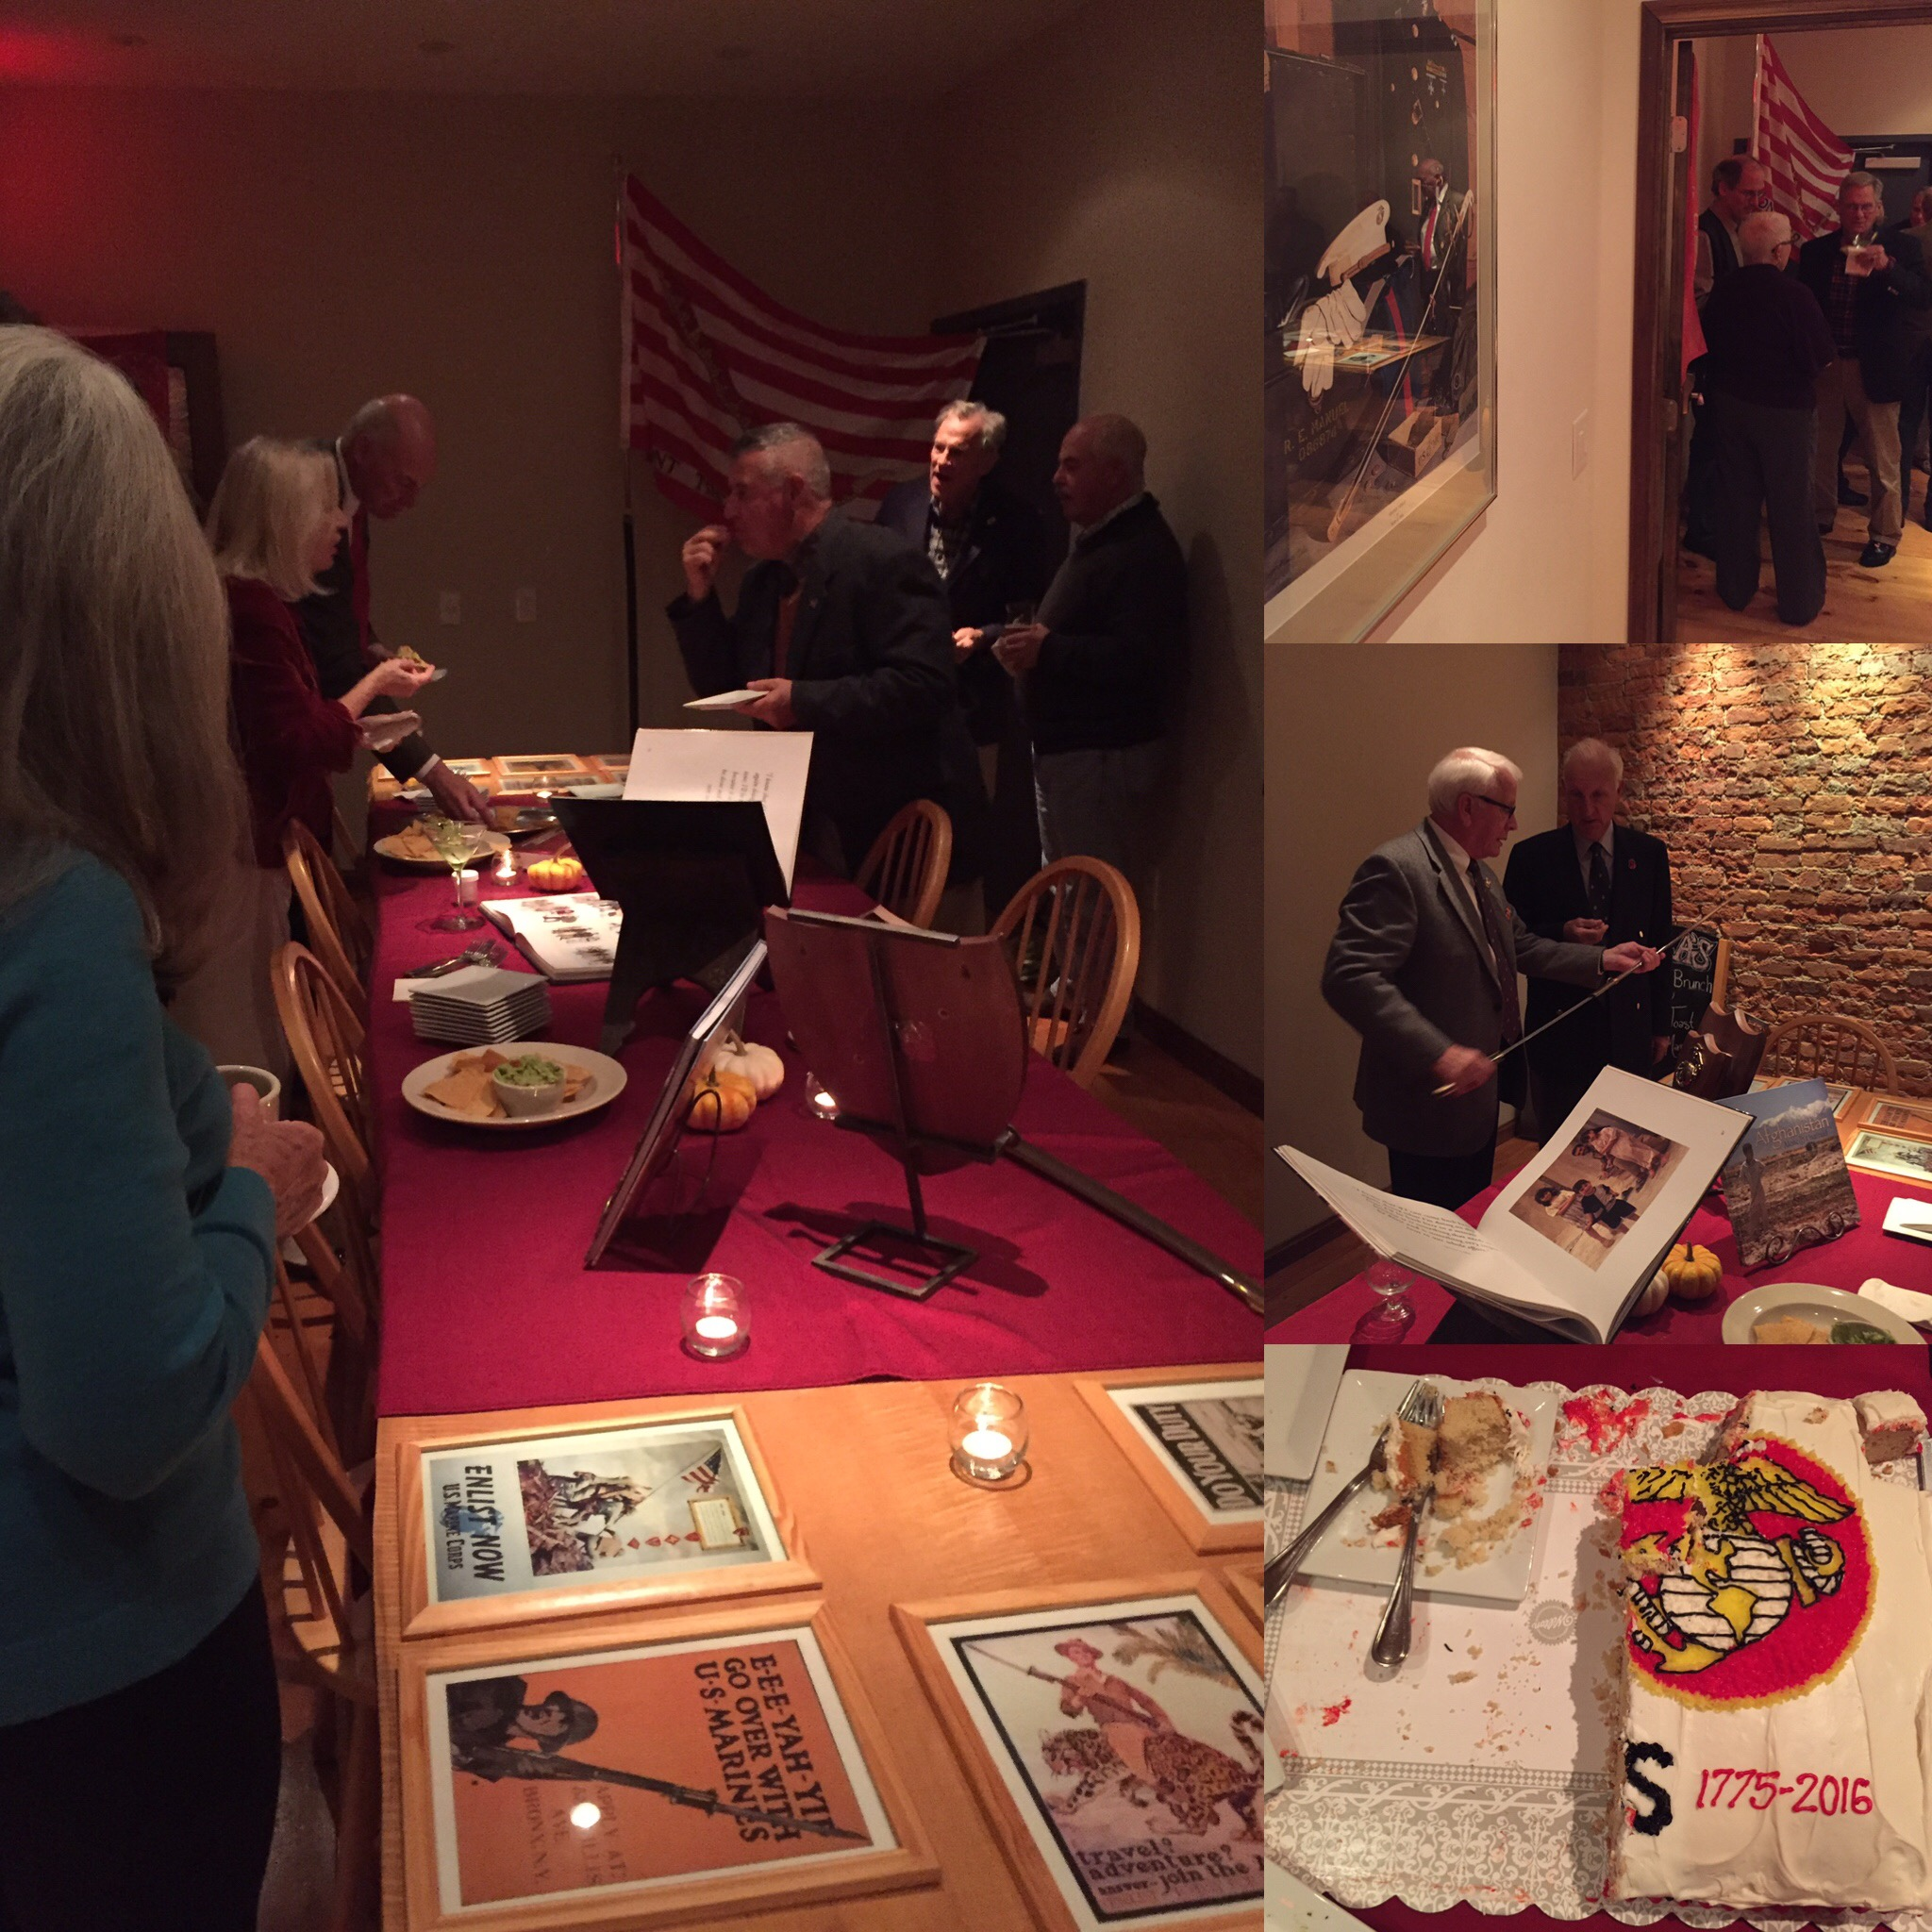 US Marine Corps' 241st Birthday Celebration at Tula's on Nov. 10, 2016. Thank you for your service!